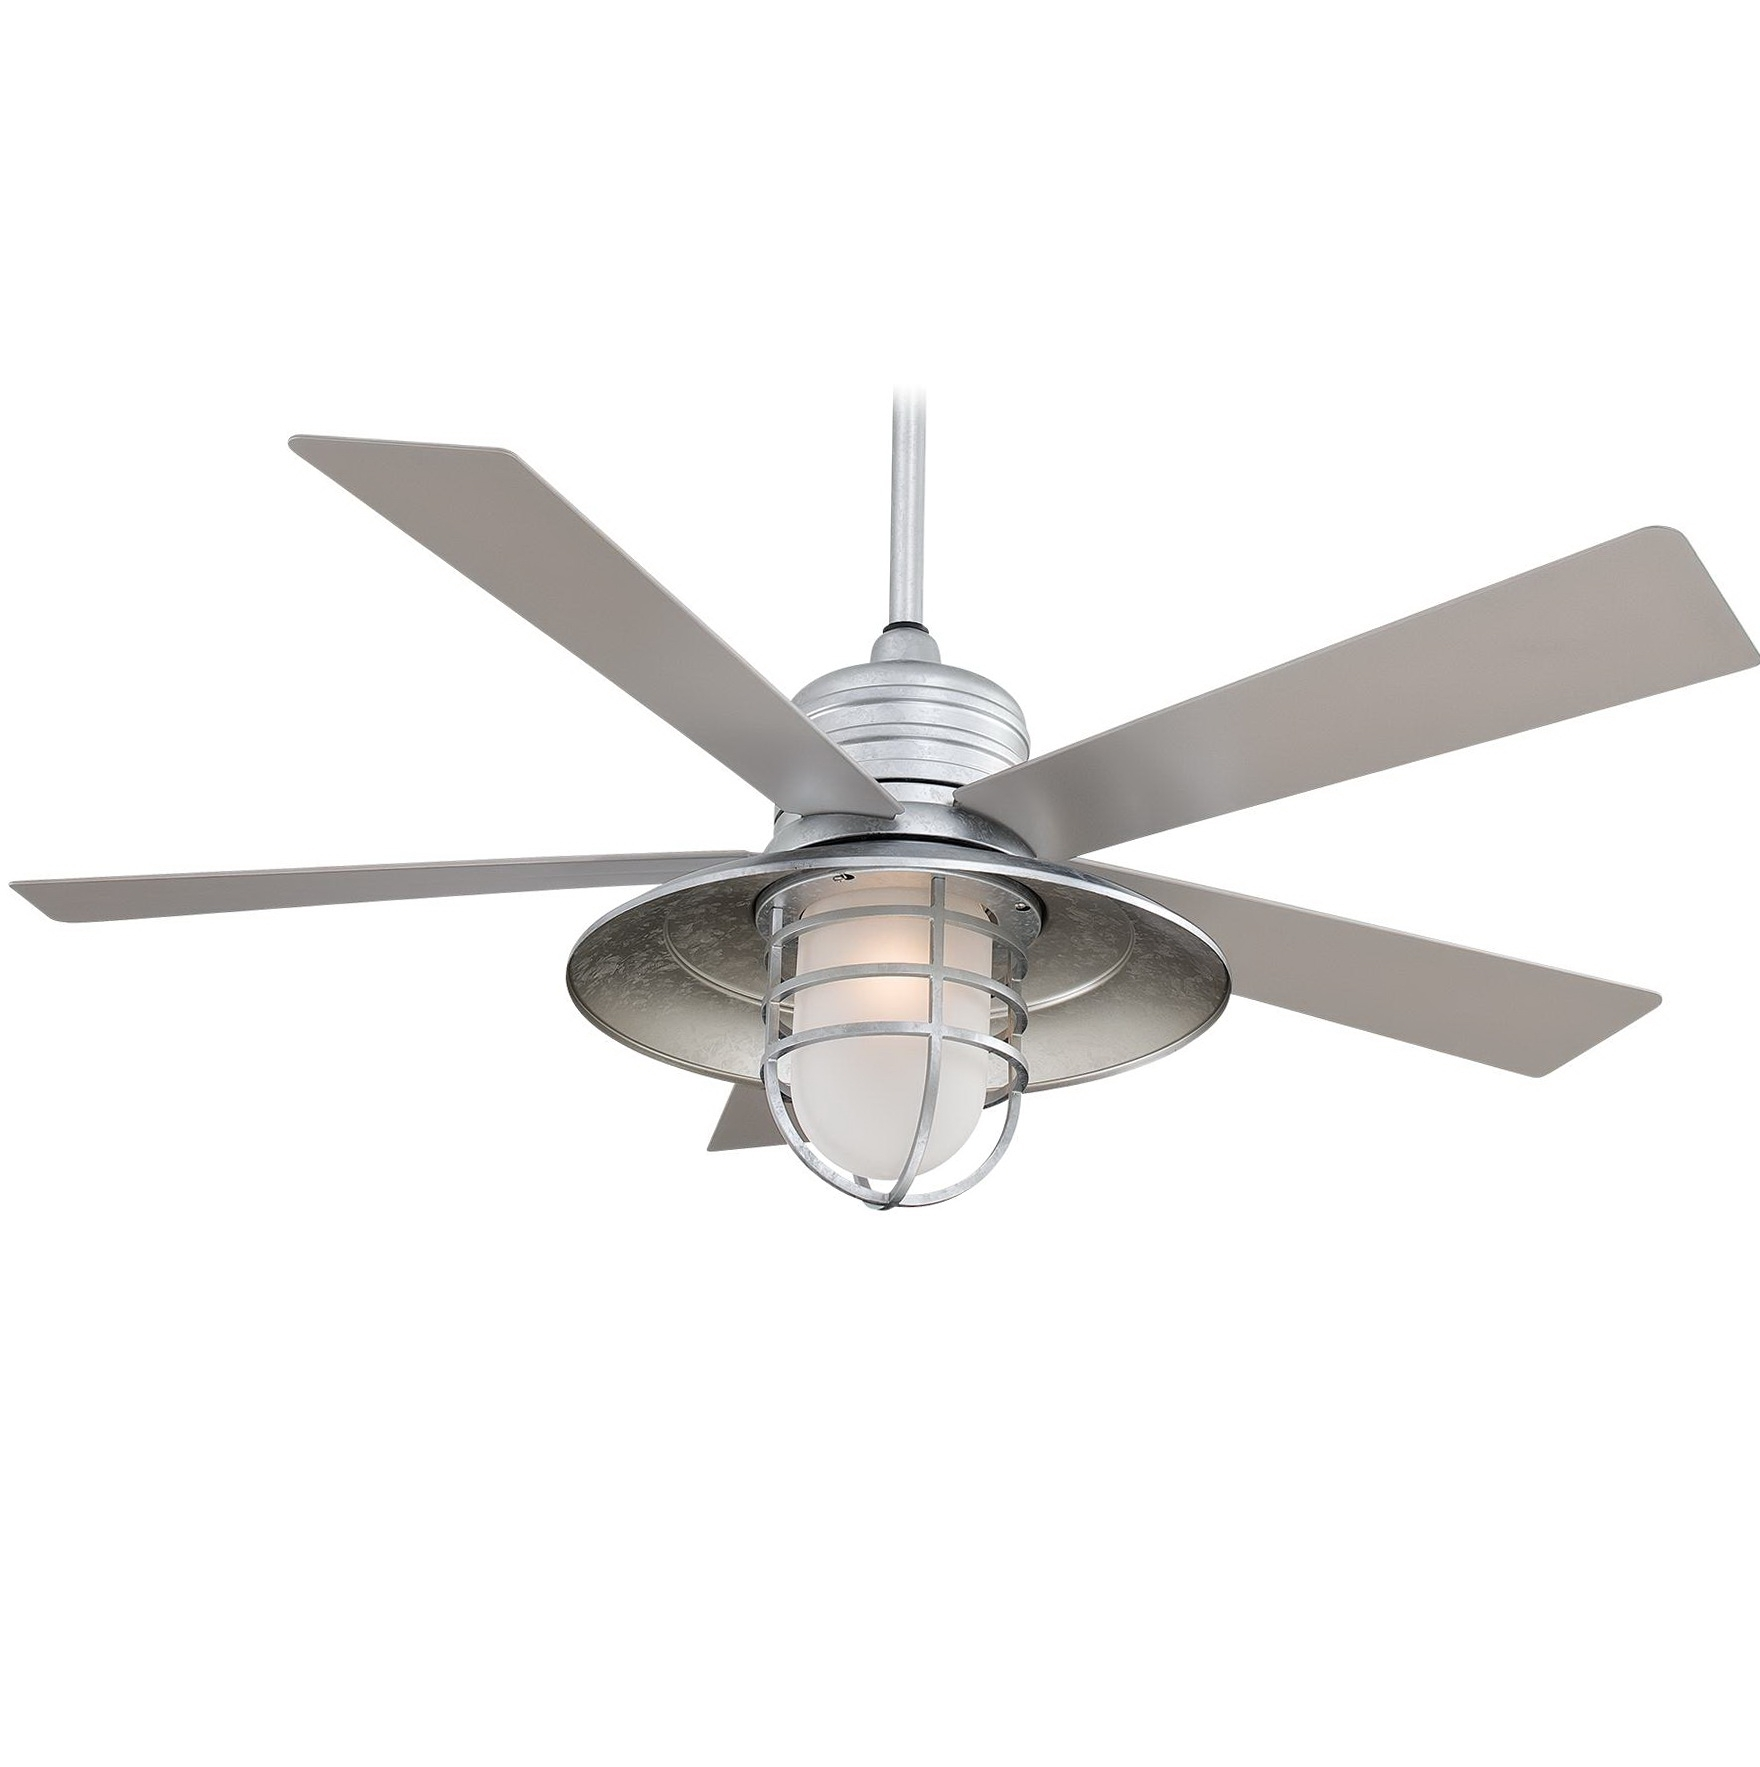 Modern Outdoor Ceiling Fans – Pixball Within 2018 Modern Outdoor Ceiling Fans With Lights (View 6 of 20)